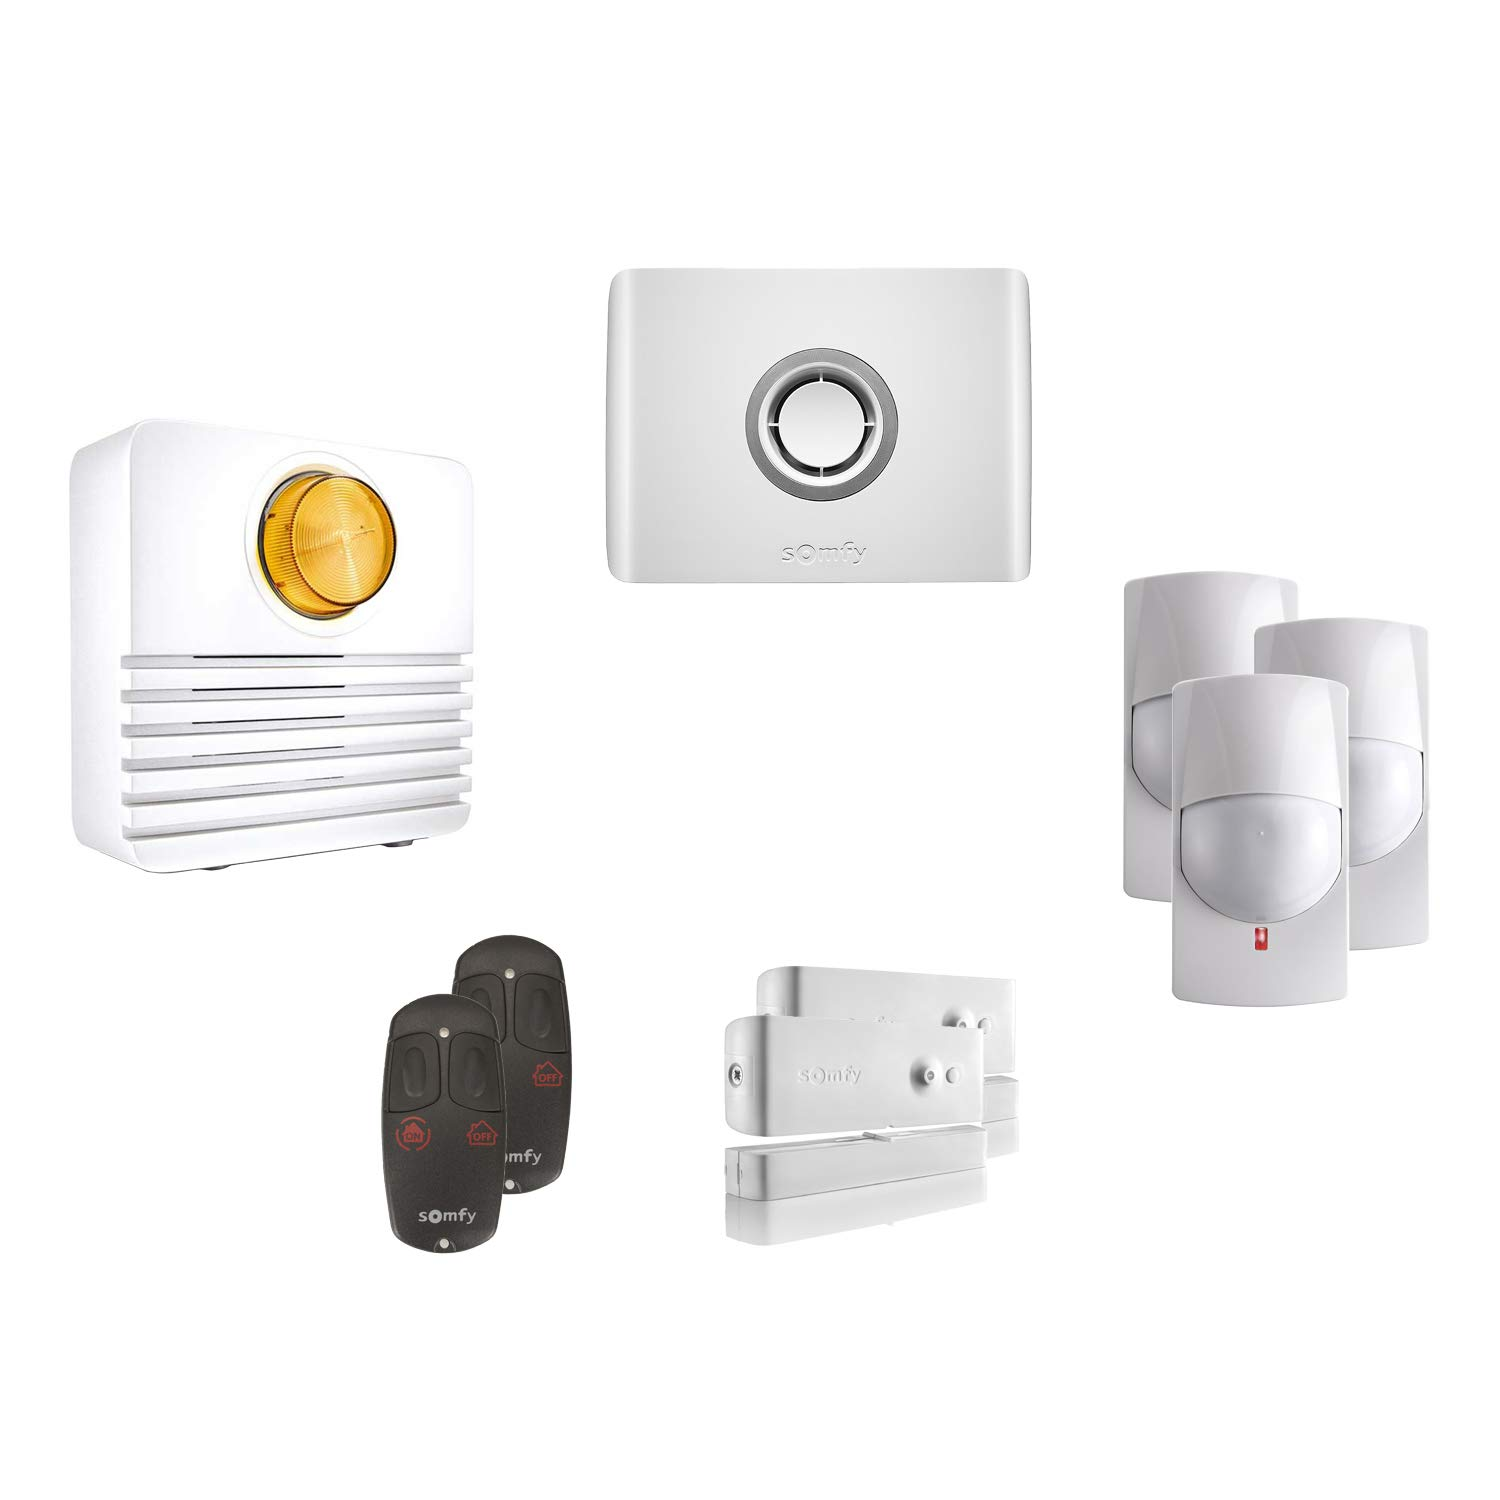 Somfy - 2401535 - Pack Alarma inalámbrica protexiom Online ...